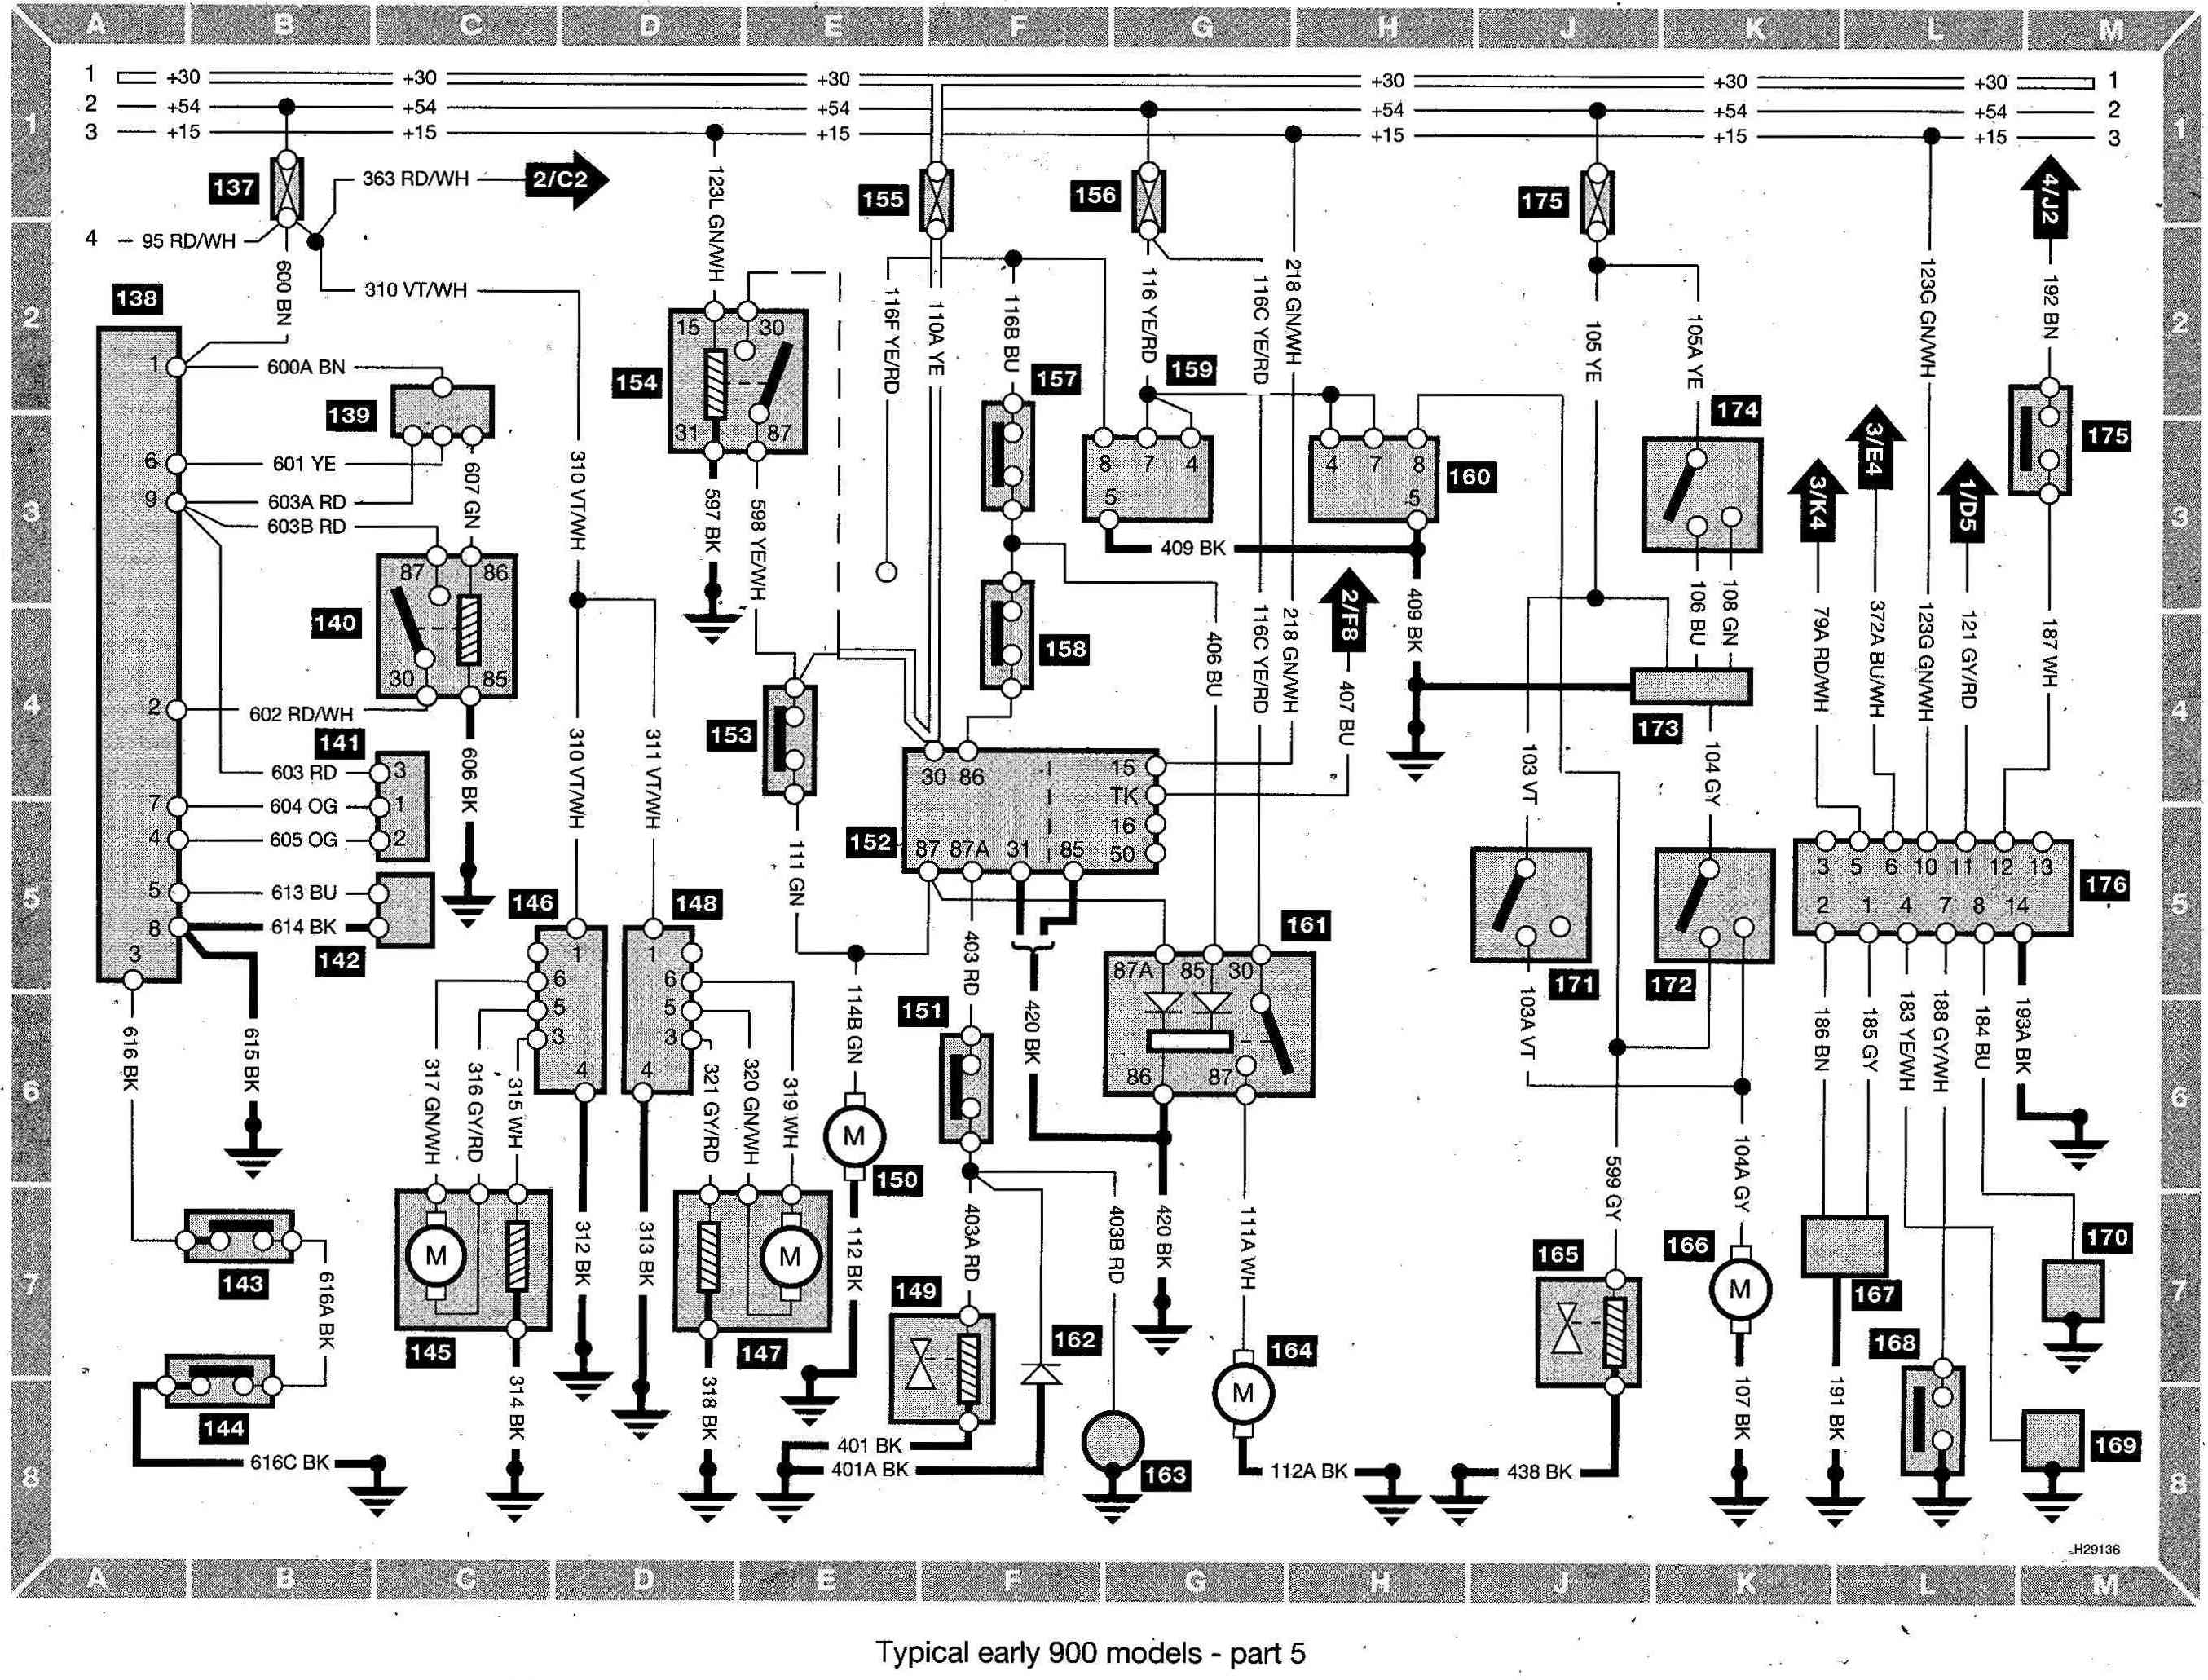 index of /saab/saab 900 wiring diagram (early models) saab wiring schematics 1993 saab wiring diagram #7